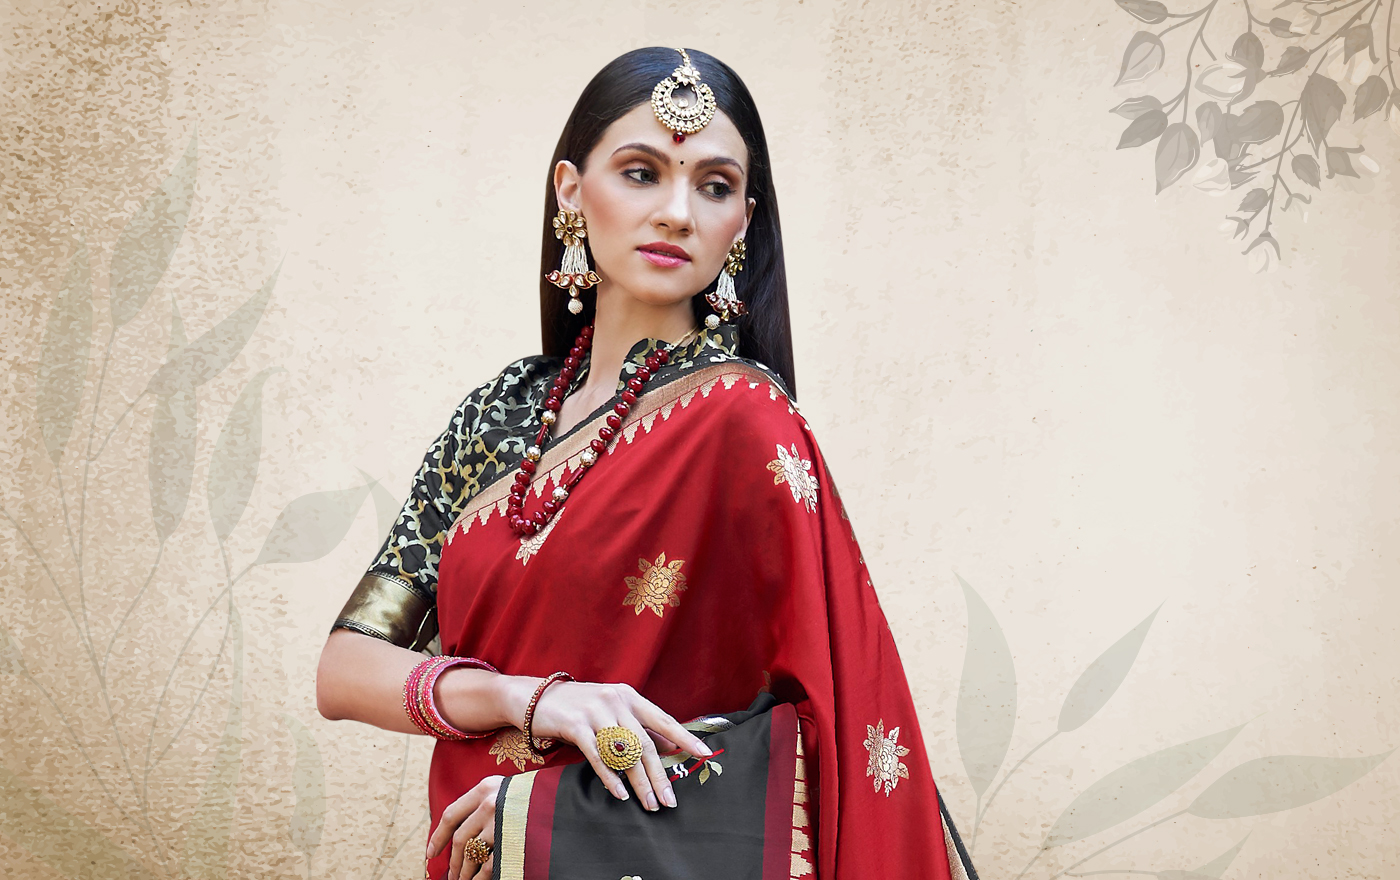 Red Dresses – The Color of Indian Tradition